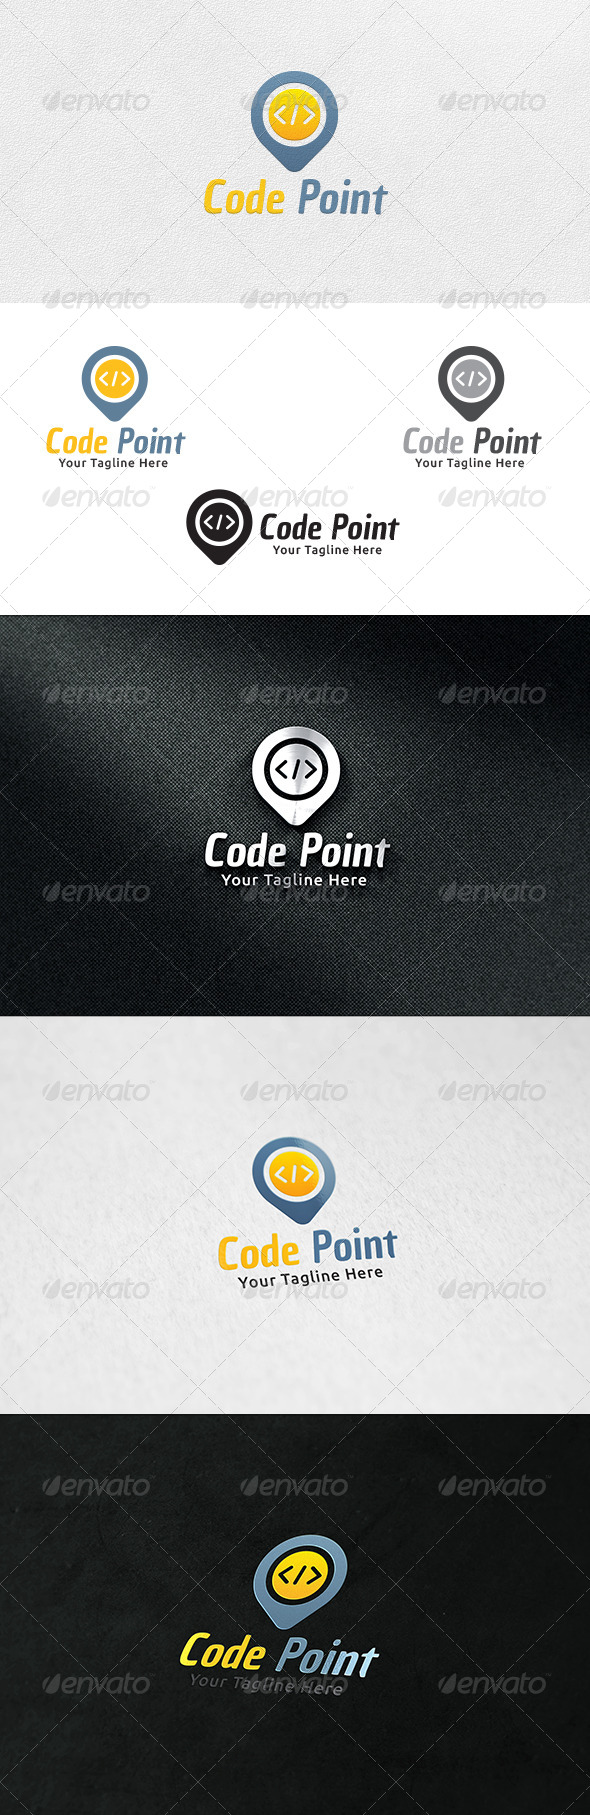 Code Point - Logo Template - Symbols Logo Templates